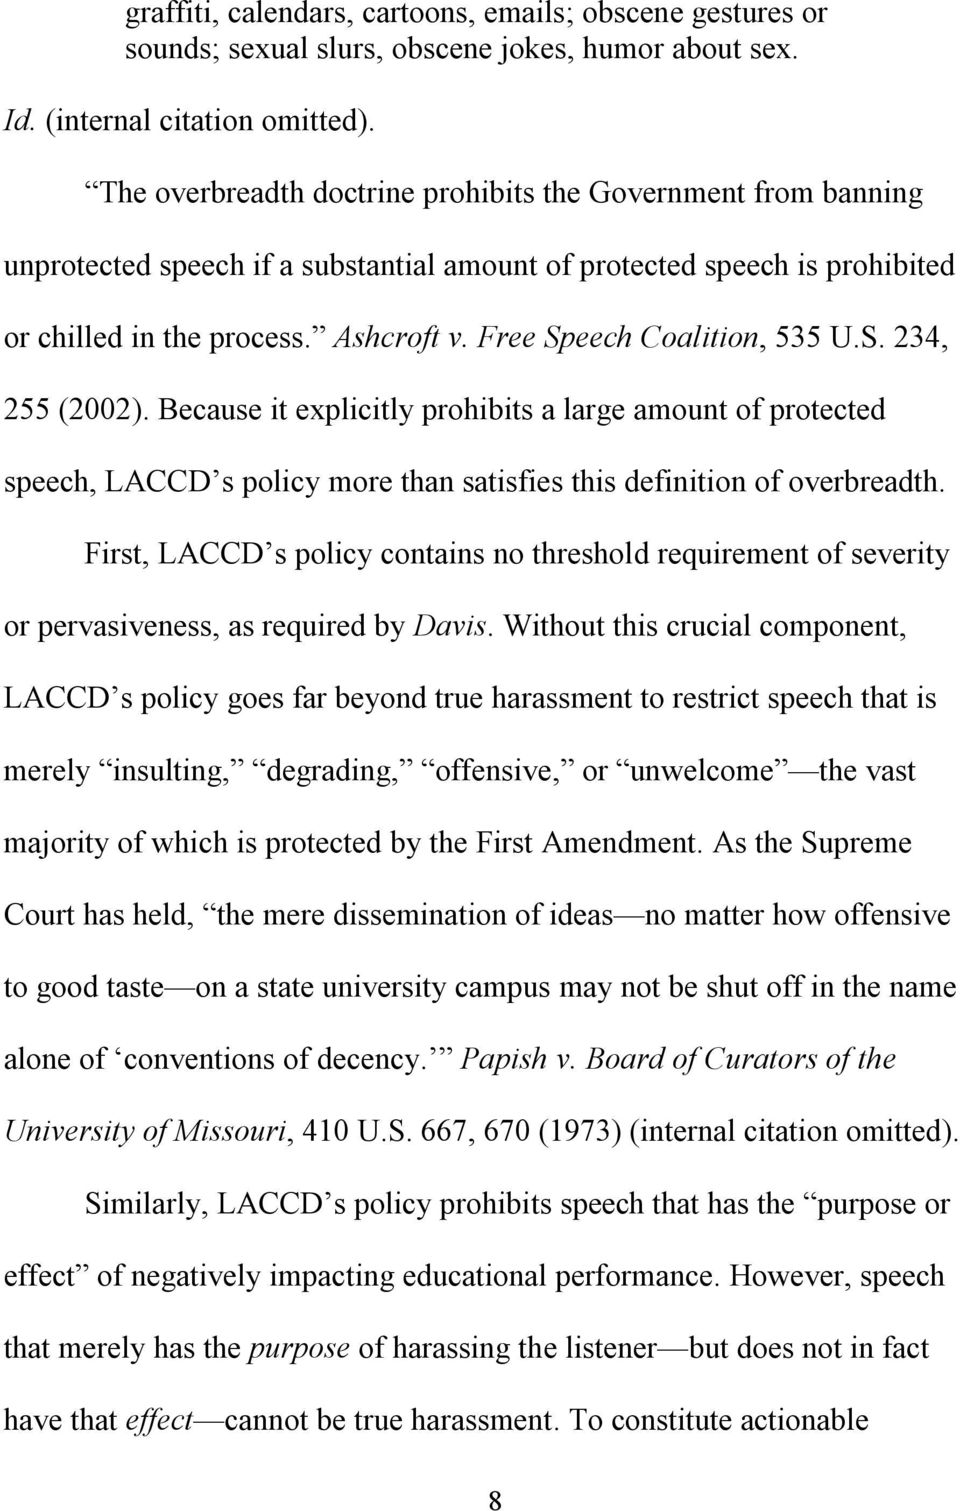 Free Speech Coalition, 535 U.S. 234, 255 (2002). Because it explicitly prohibits a large amount of protected speech, LACCD s policy more than satisfies this definition of overbreadth.